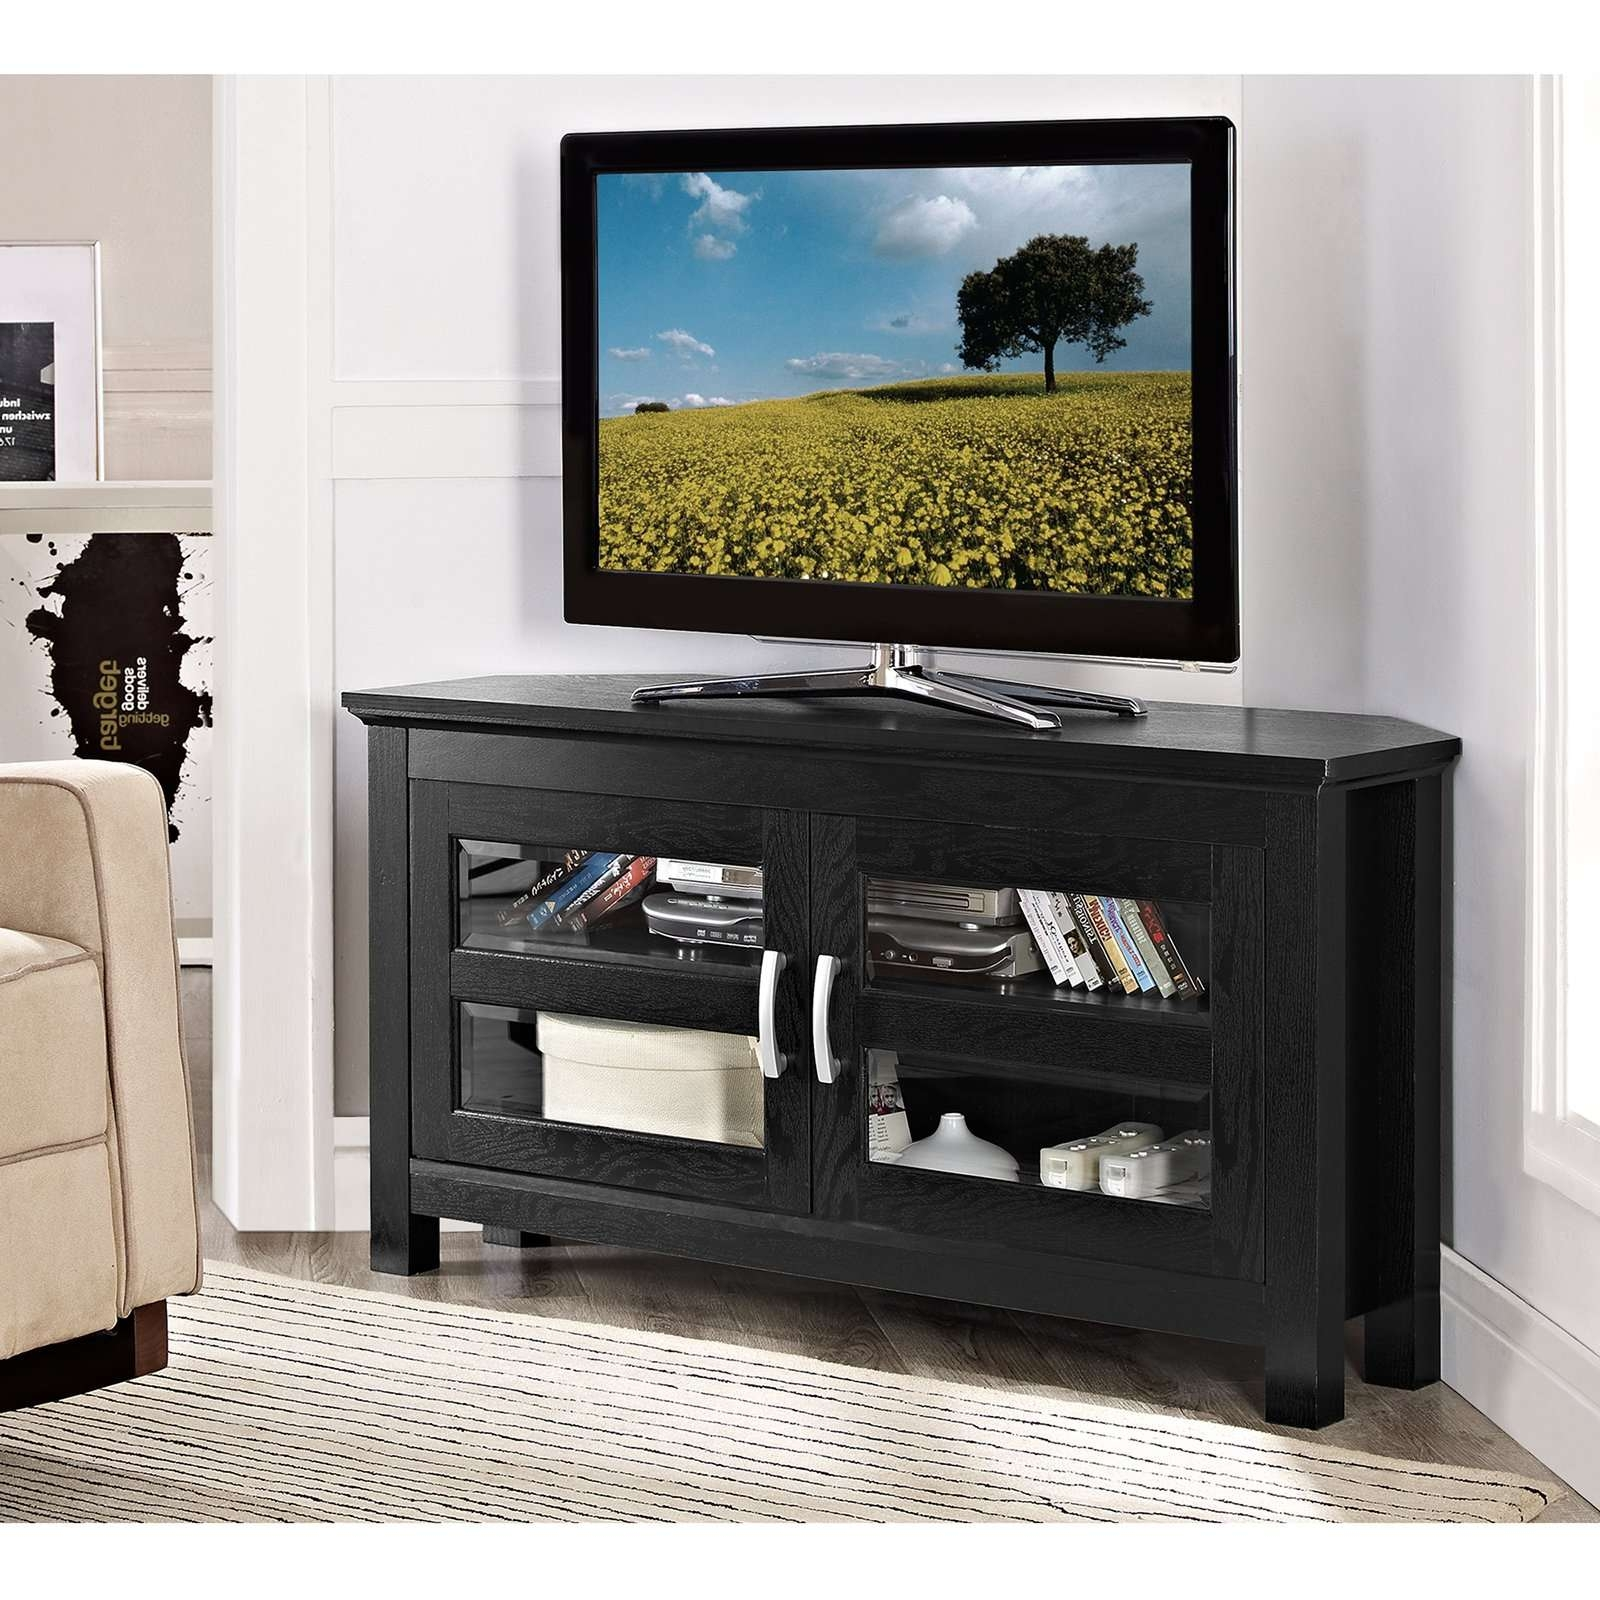 Corner Black Wooden Tv Stand With Storage And Double Glass Doors Pertaining To Double Tv Stands (View 12 of 15)